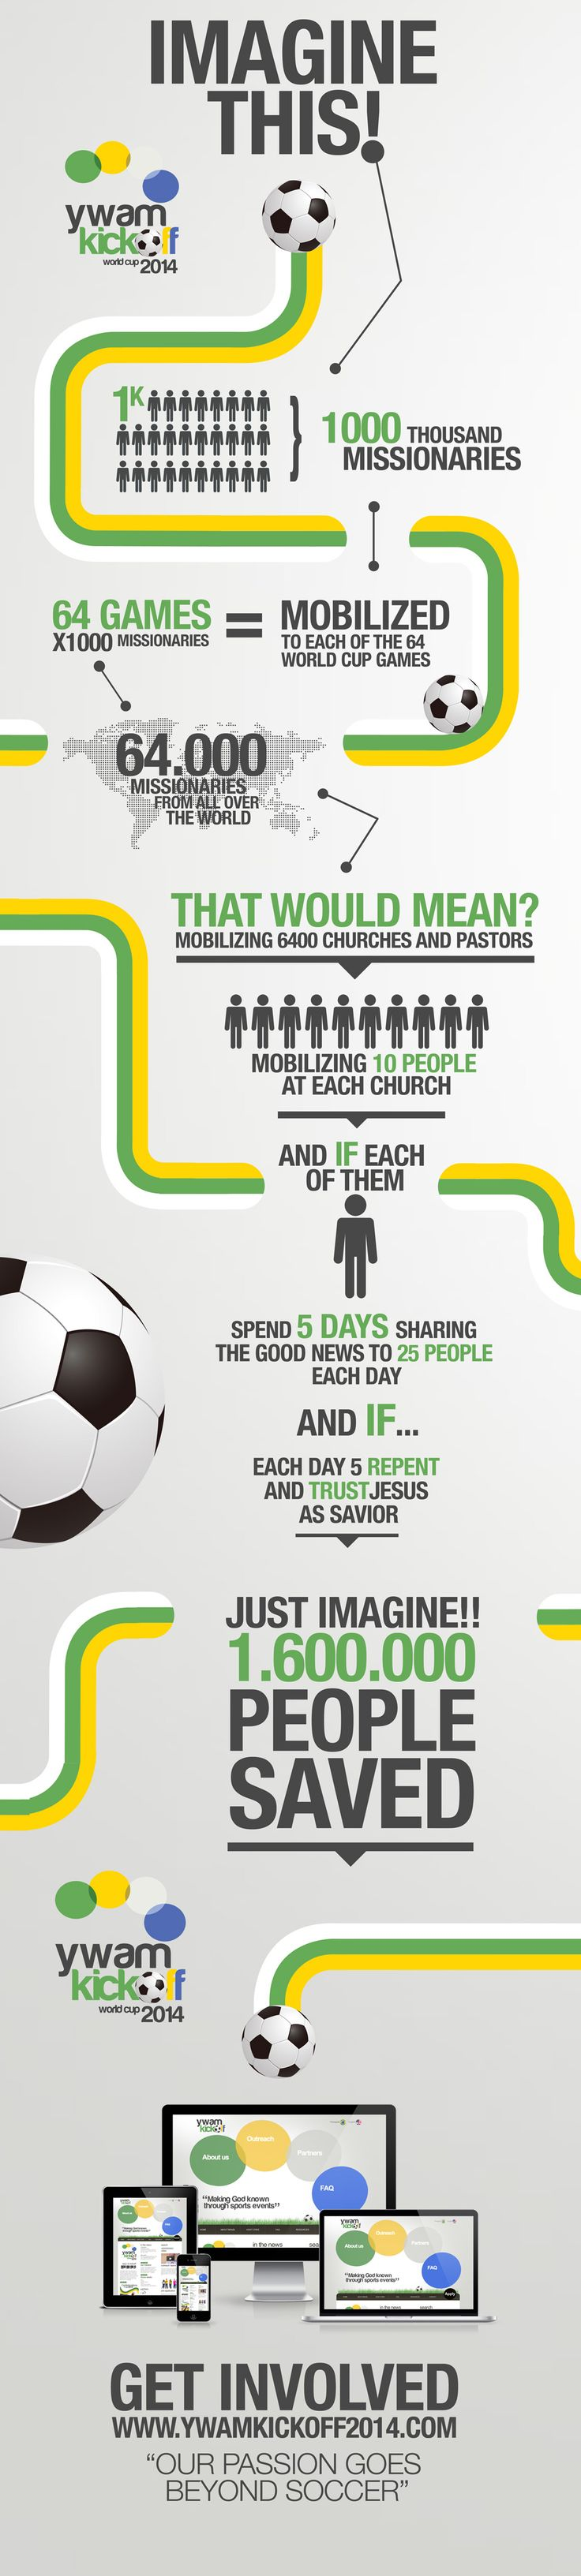 imagine this | YWAMKICKOFF 2014 | WorldCup Brazil Are you going to Brazil in 2014?